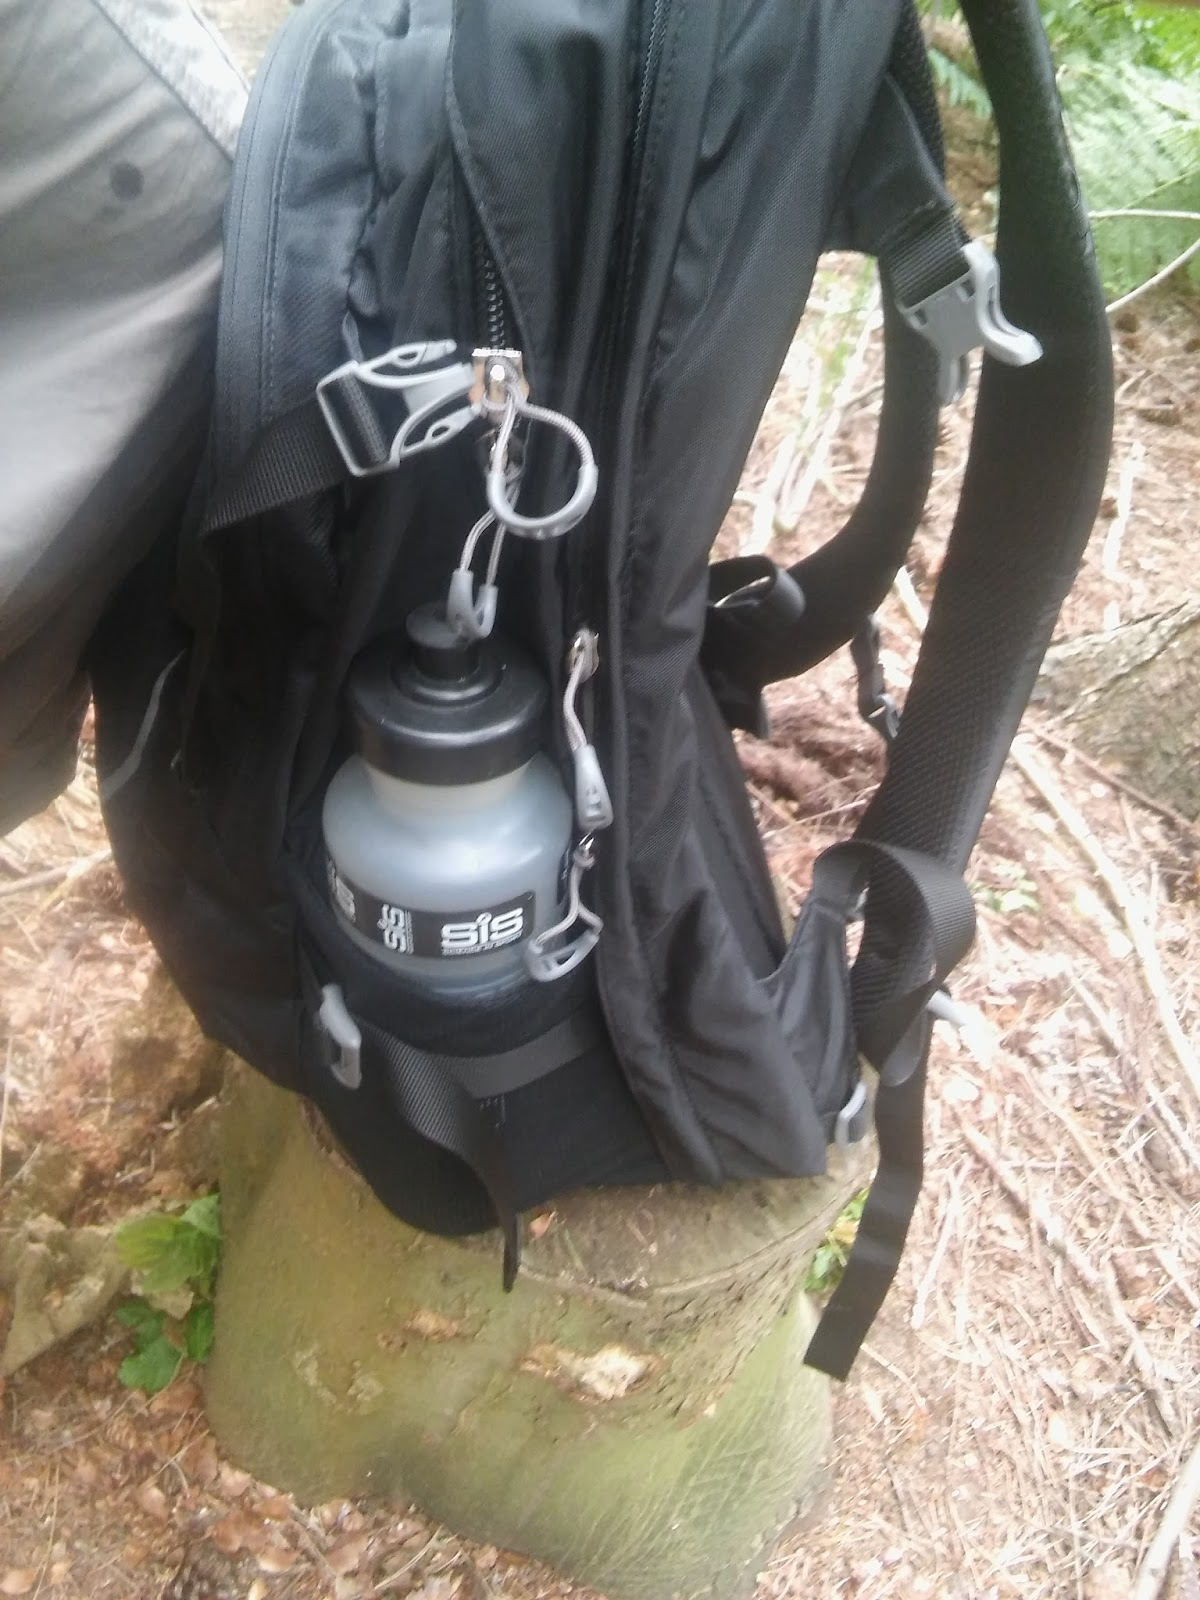 The most crucial section regarding hiking for me would be the back panel. There is not much ventilation here. My main hiking pack is a Lowe Alpine Airzone ... & Gear Review : Osprey Nebula 34.